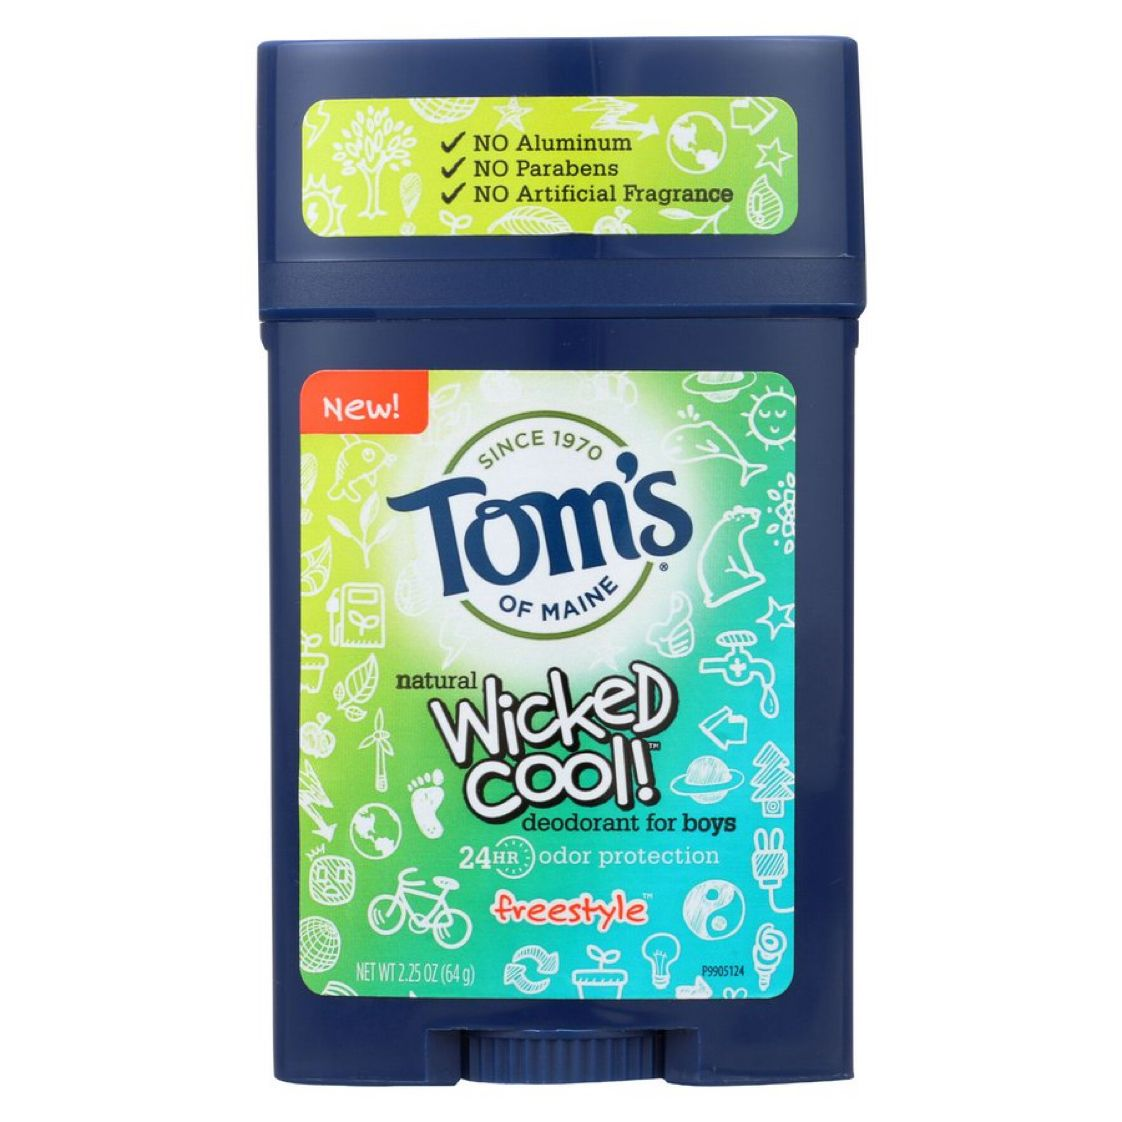 6 Pack - Tom's of Maine Wicked Cool Boy's Deodorant Stick, Freestyle   $5.06 with Free In-Store Pickup   #steals #deals #stealsanddeals